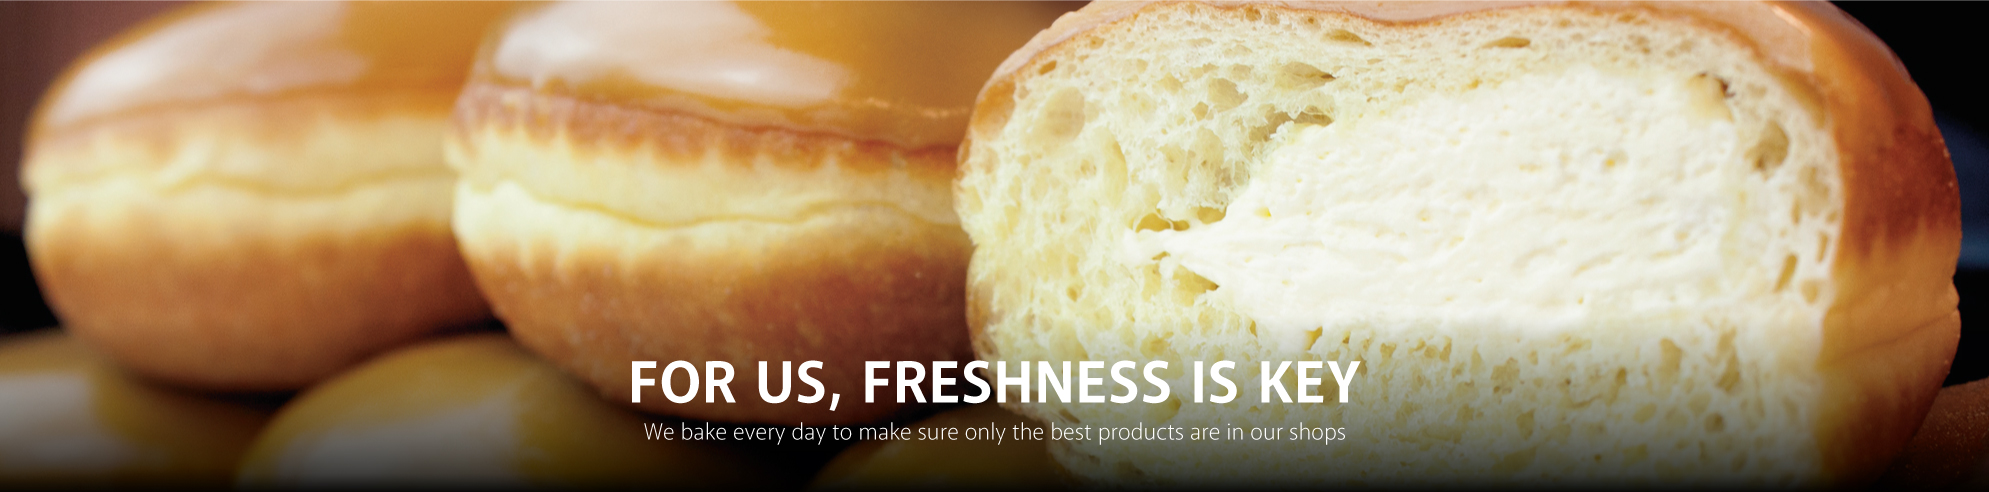 For us, Freshness is key. We bake every day to make sure only the best products are in our shops